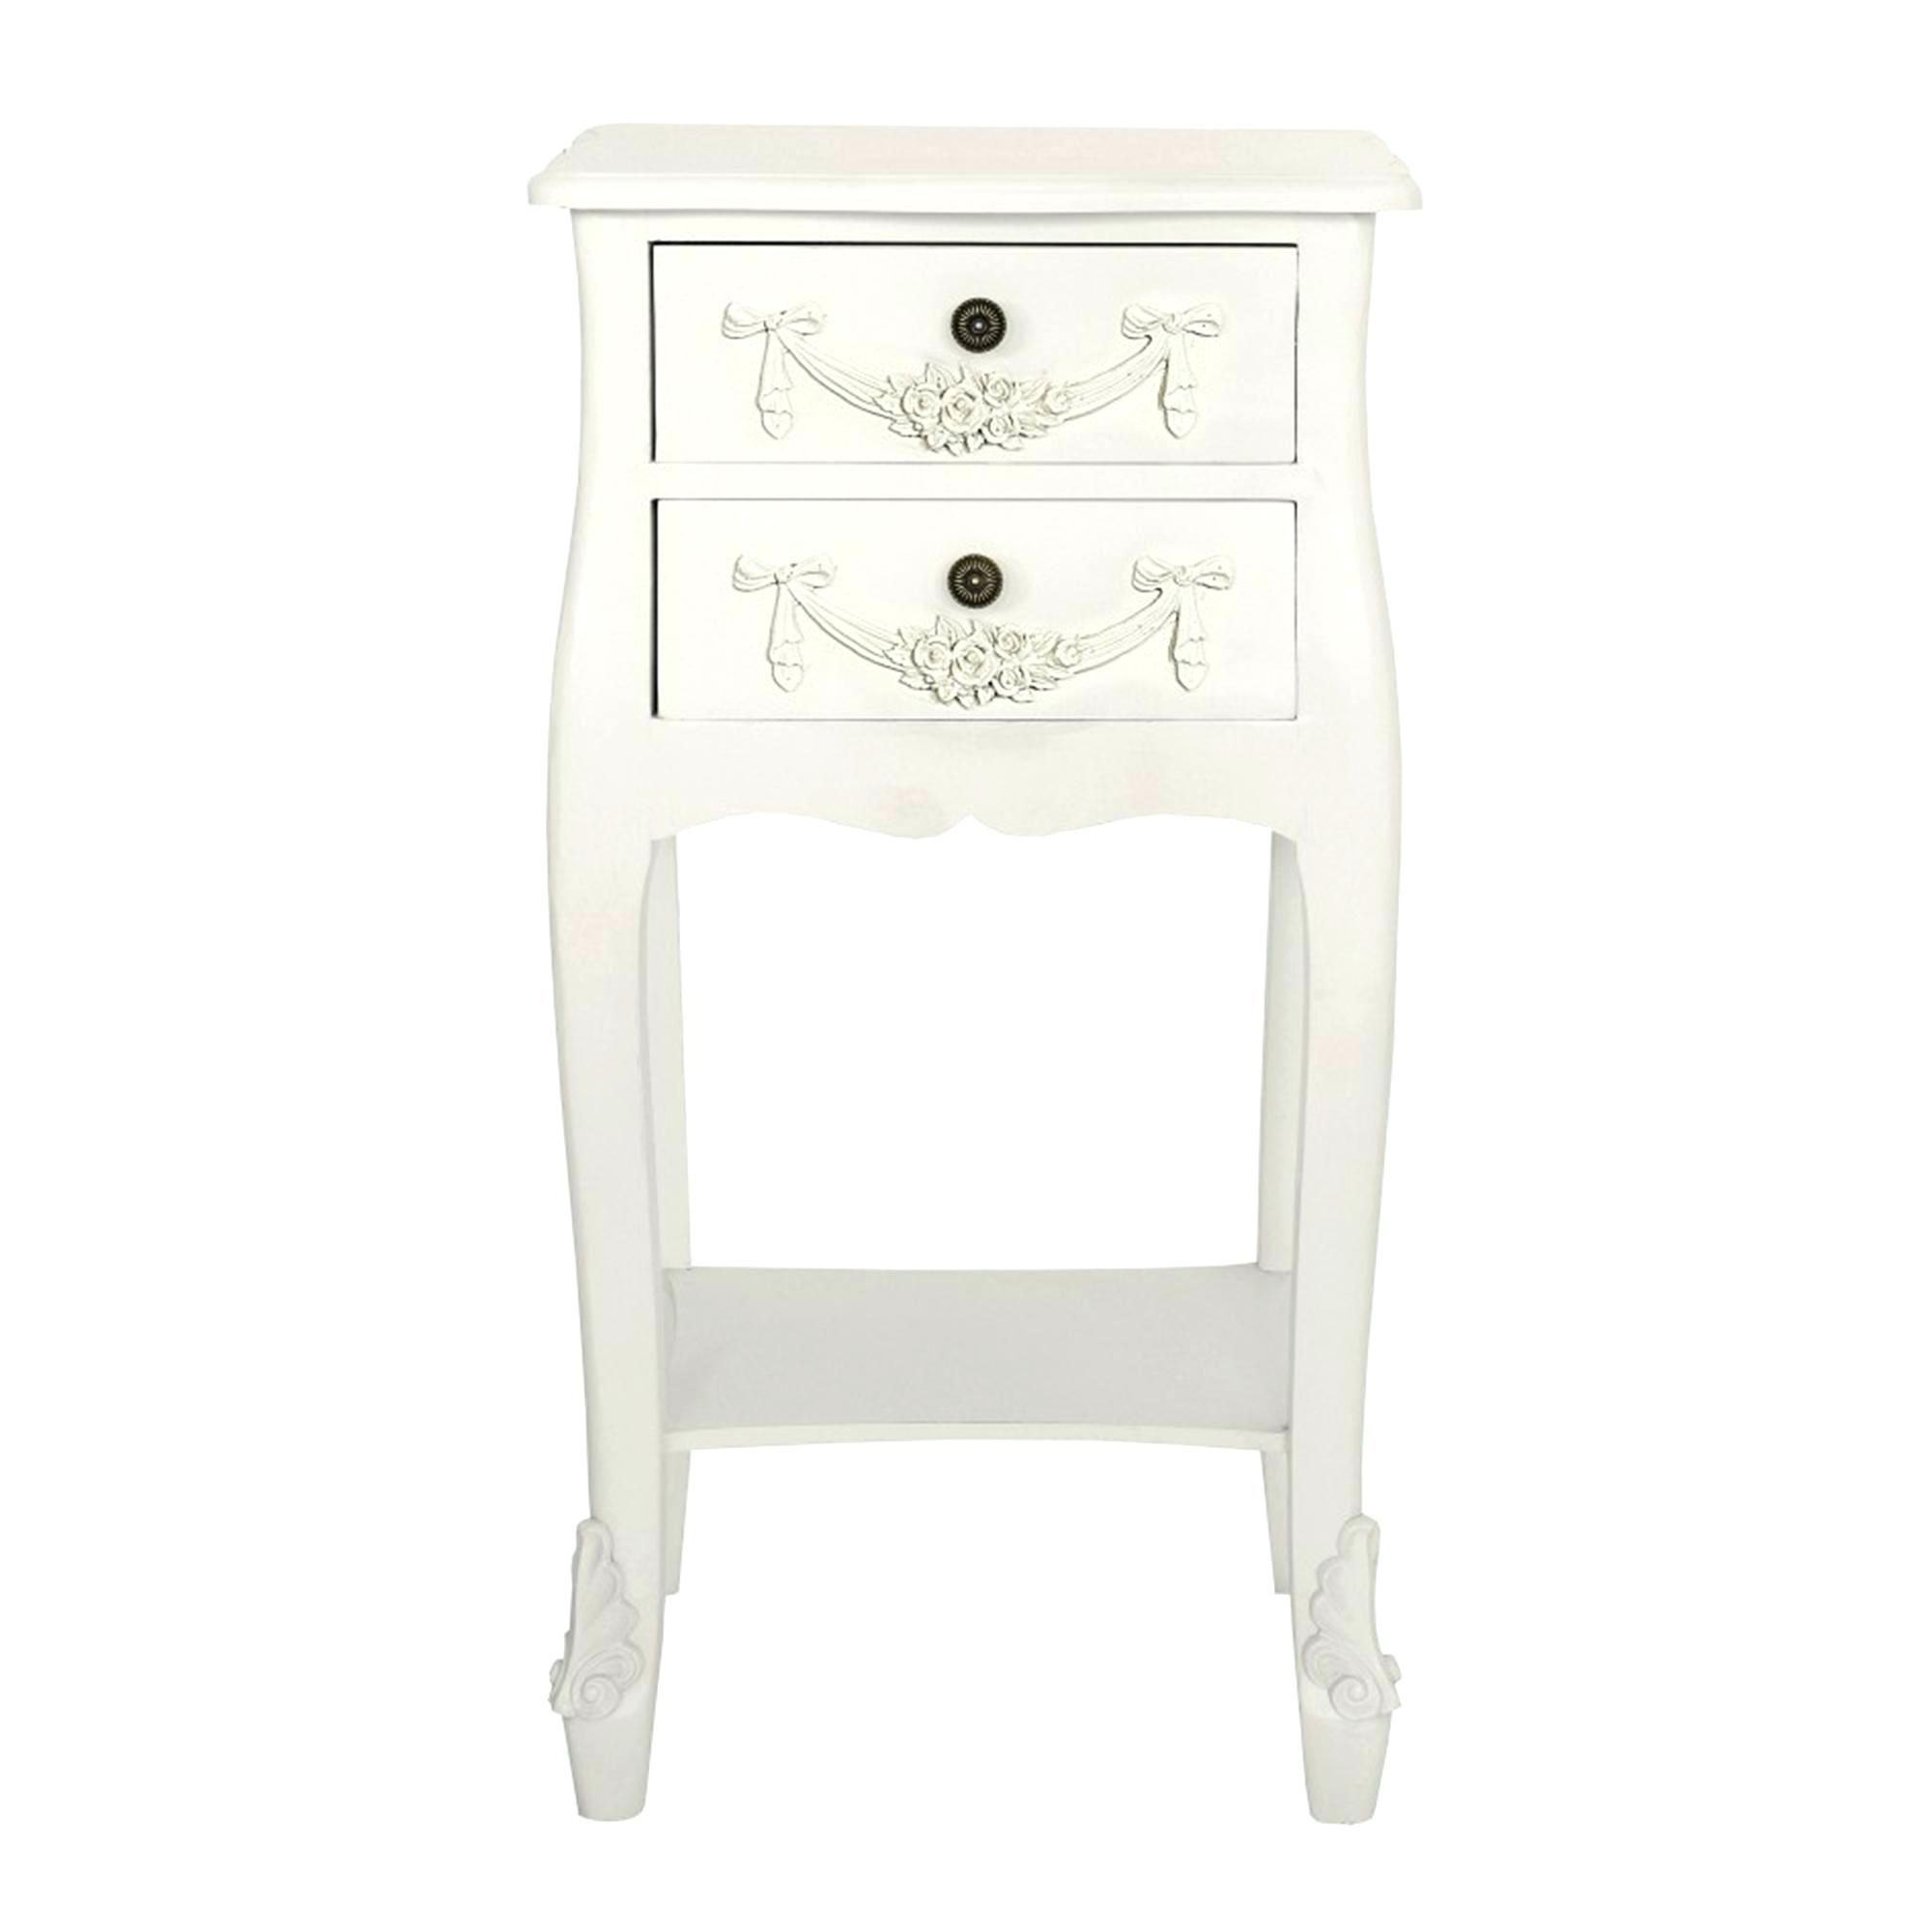 white drawer nightstand shipdirect bedside table two monterey tall with open shelf prepac accent closet barn doors yellow decor wine rack holder outdoor couch set bar height low